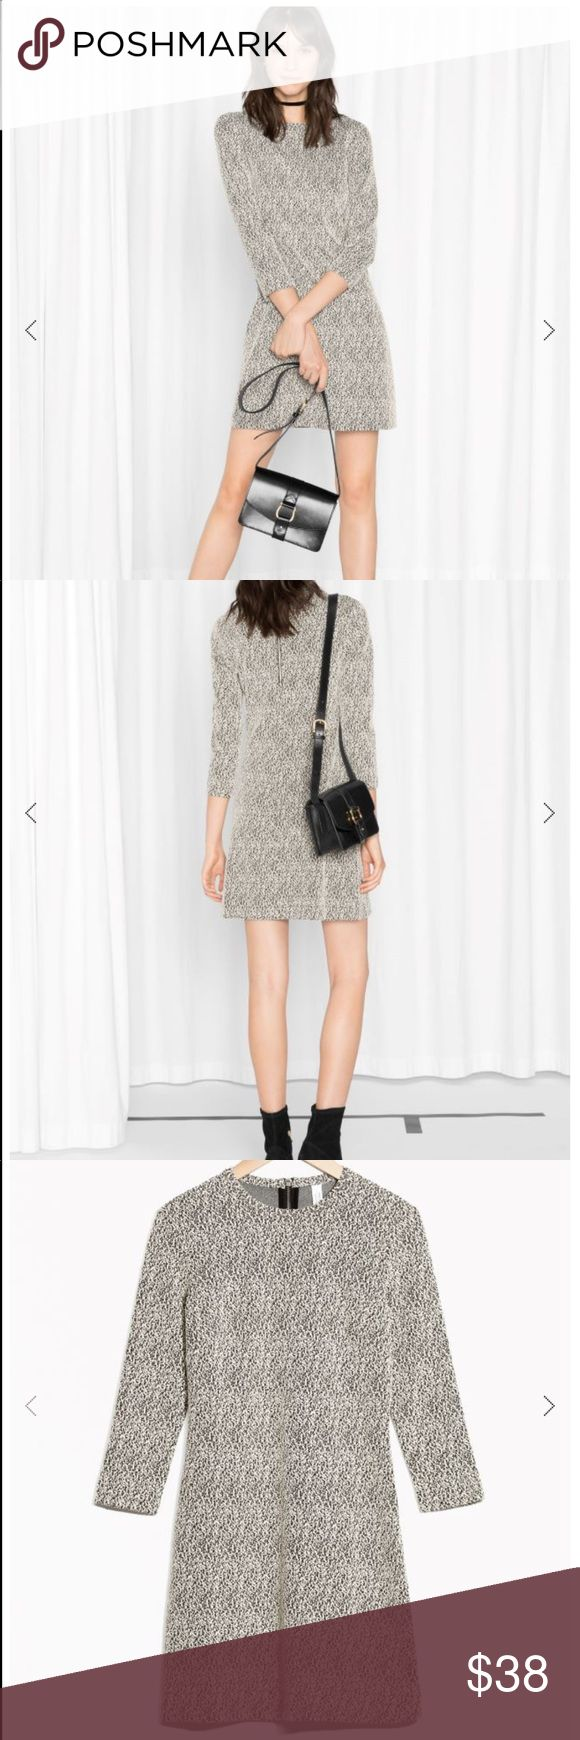 & other stories long sleeve mini dress & other stories black and white mini dress. Worn once. Very flattering. & other stories is a more curated H & M. The dress is a size 6 but I usually were a 2 or 4. The dress has some stretch to it. & other stories Dresses Long Sleeve